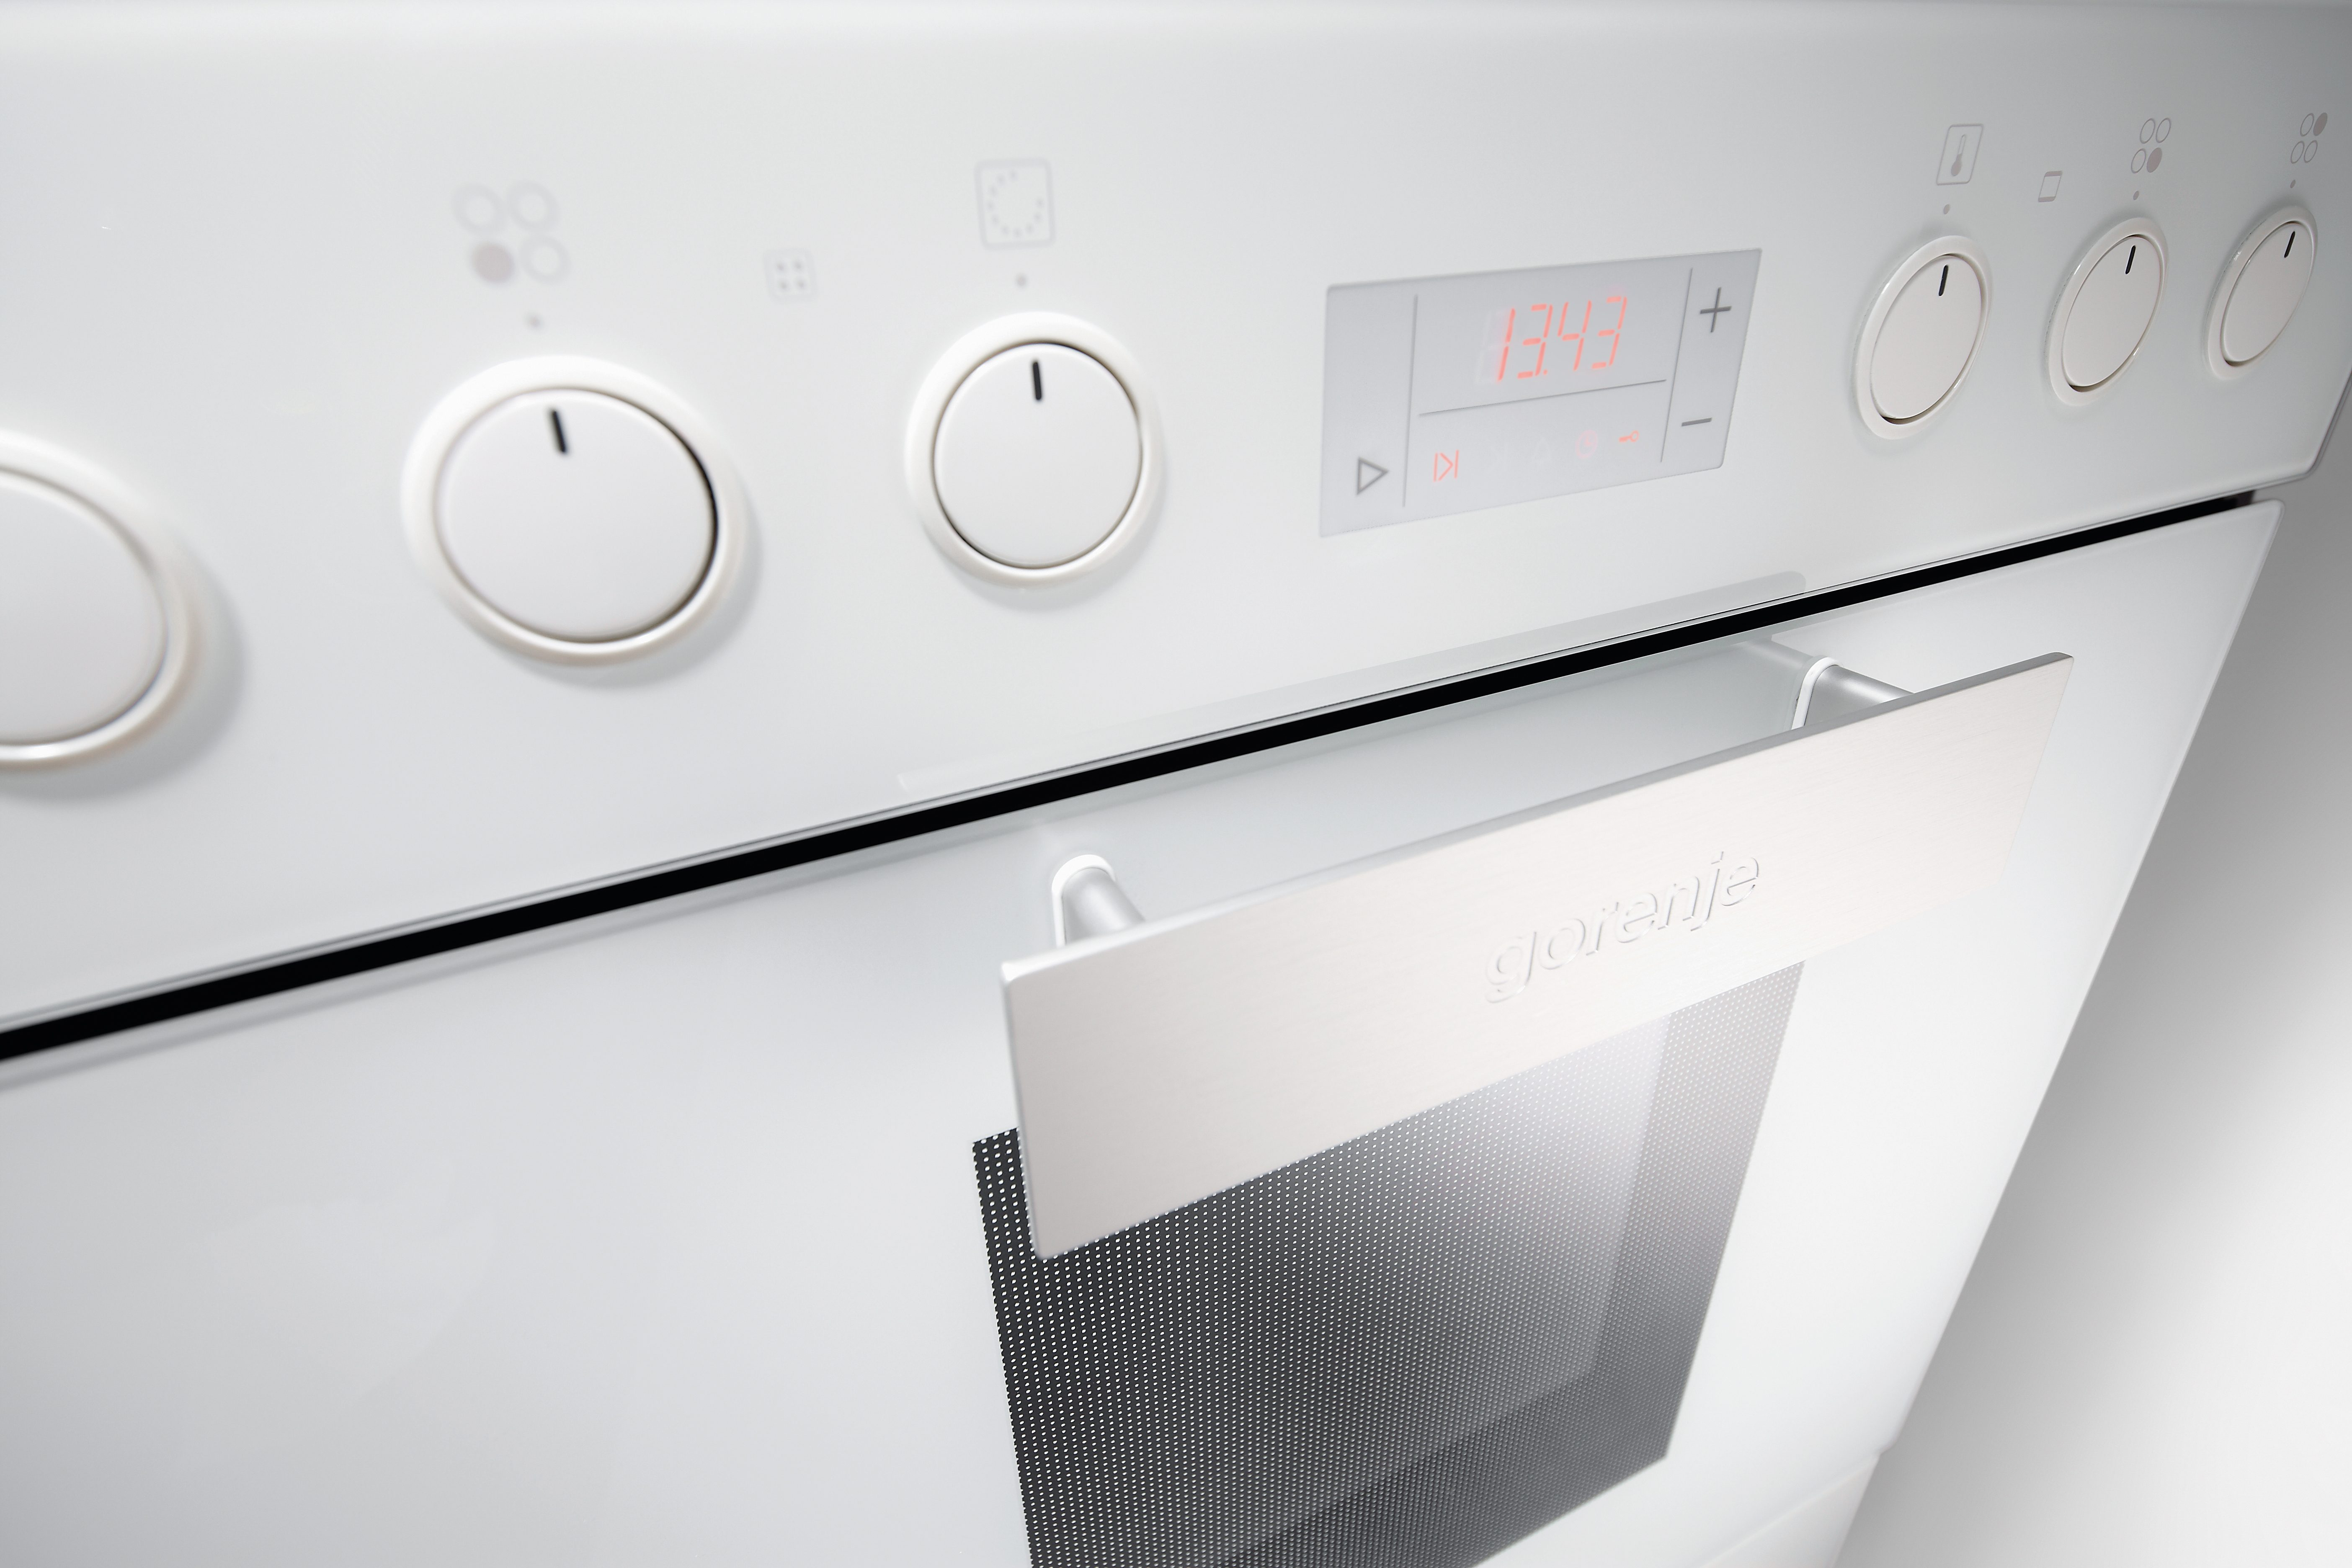 Uncategorized Gorenje Kitchen Appliances gorenje one the new generation of cooking appliances can save as much 25 energy compared to older models are also made from materials